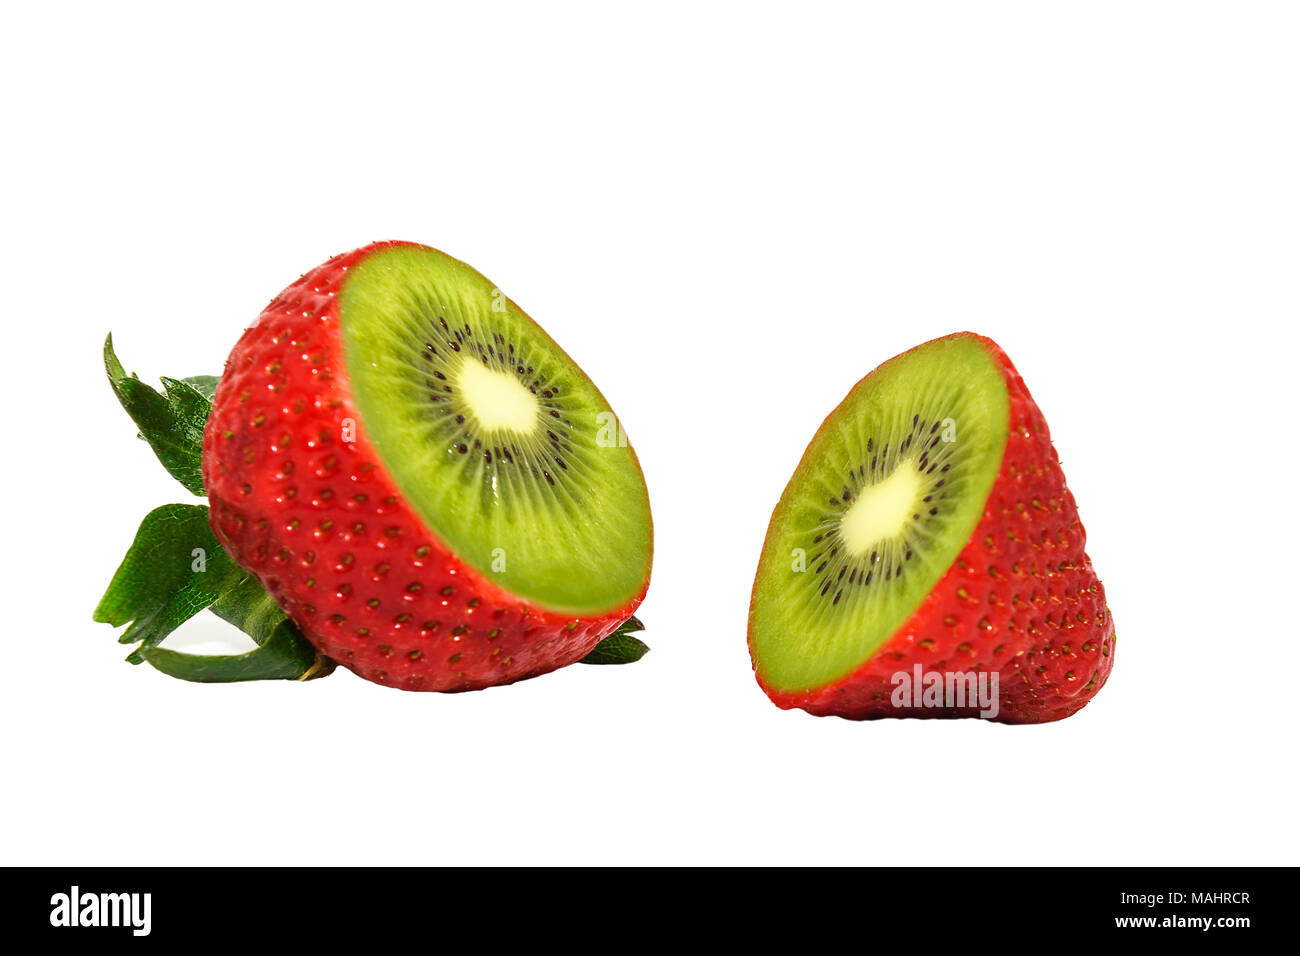 concept image of genetically modified fruit stock photo 178641815